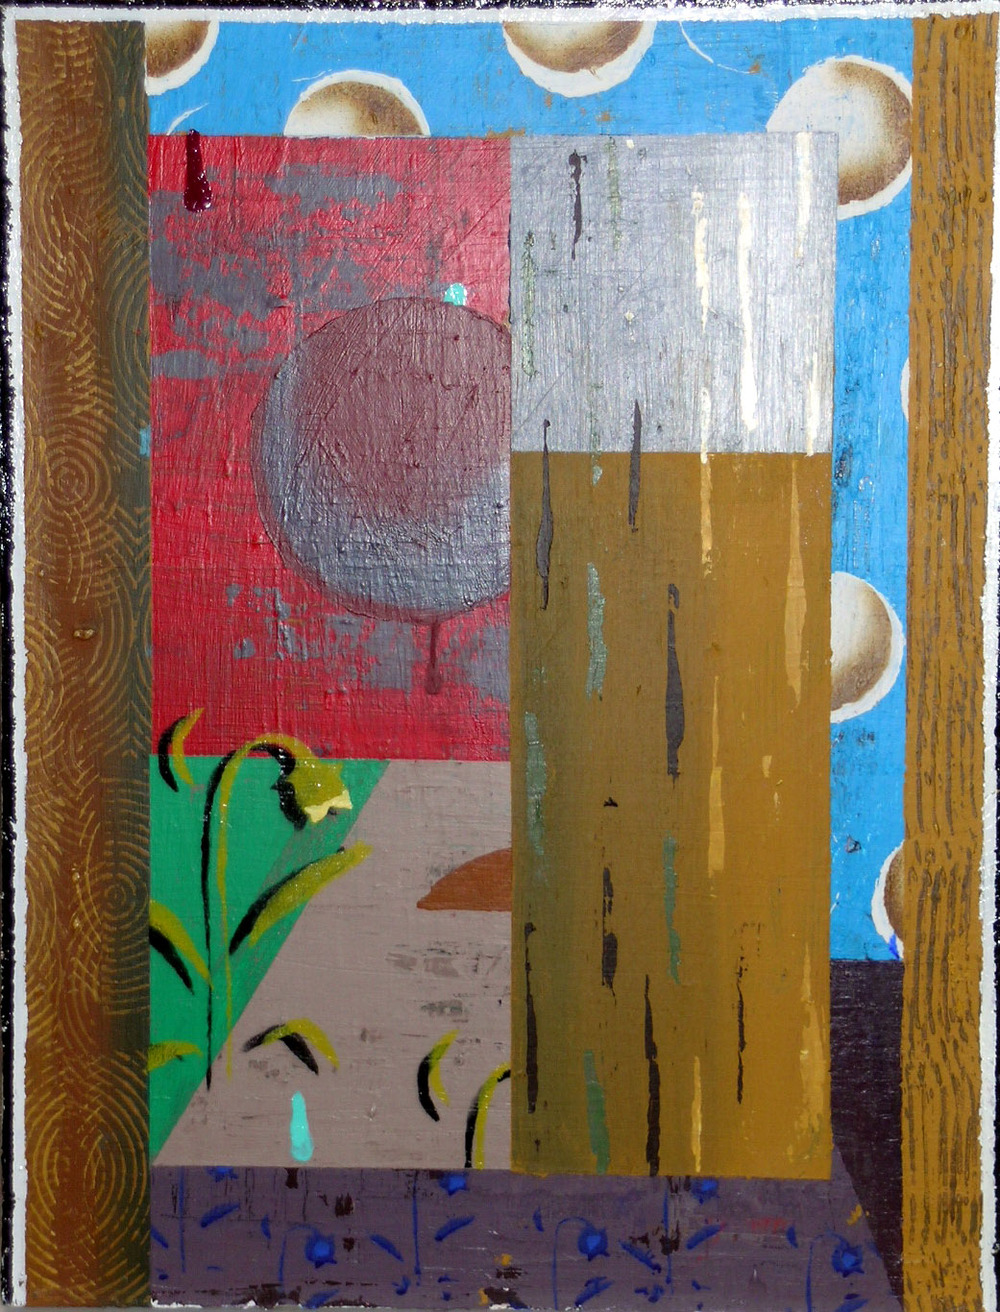 Day's Doubt,  1996 acrylic and enamel on canvas, 26 x 20 inches